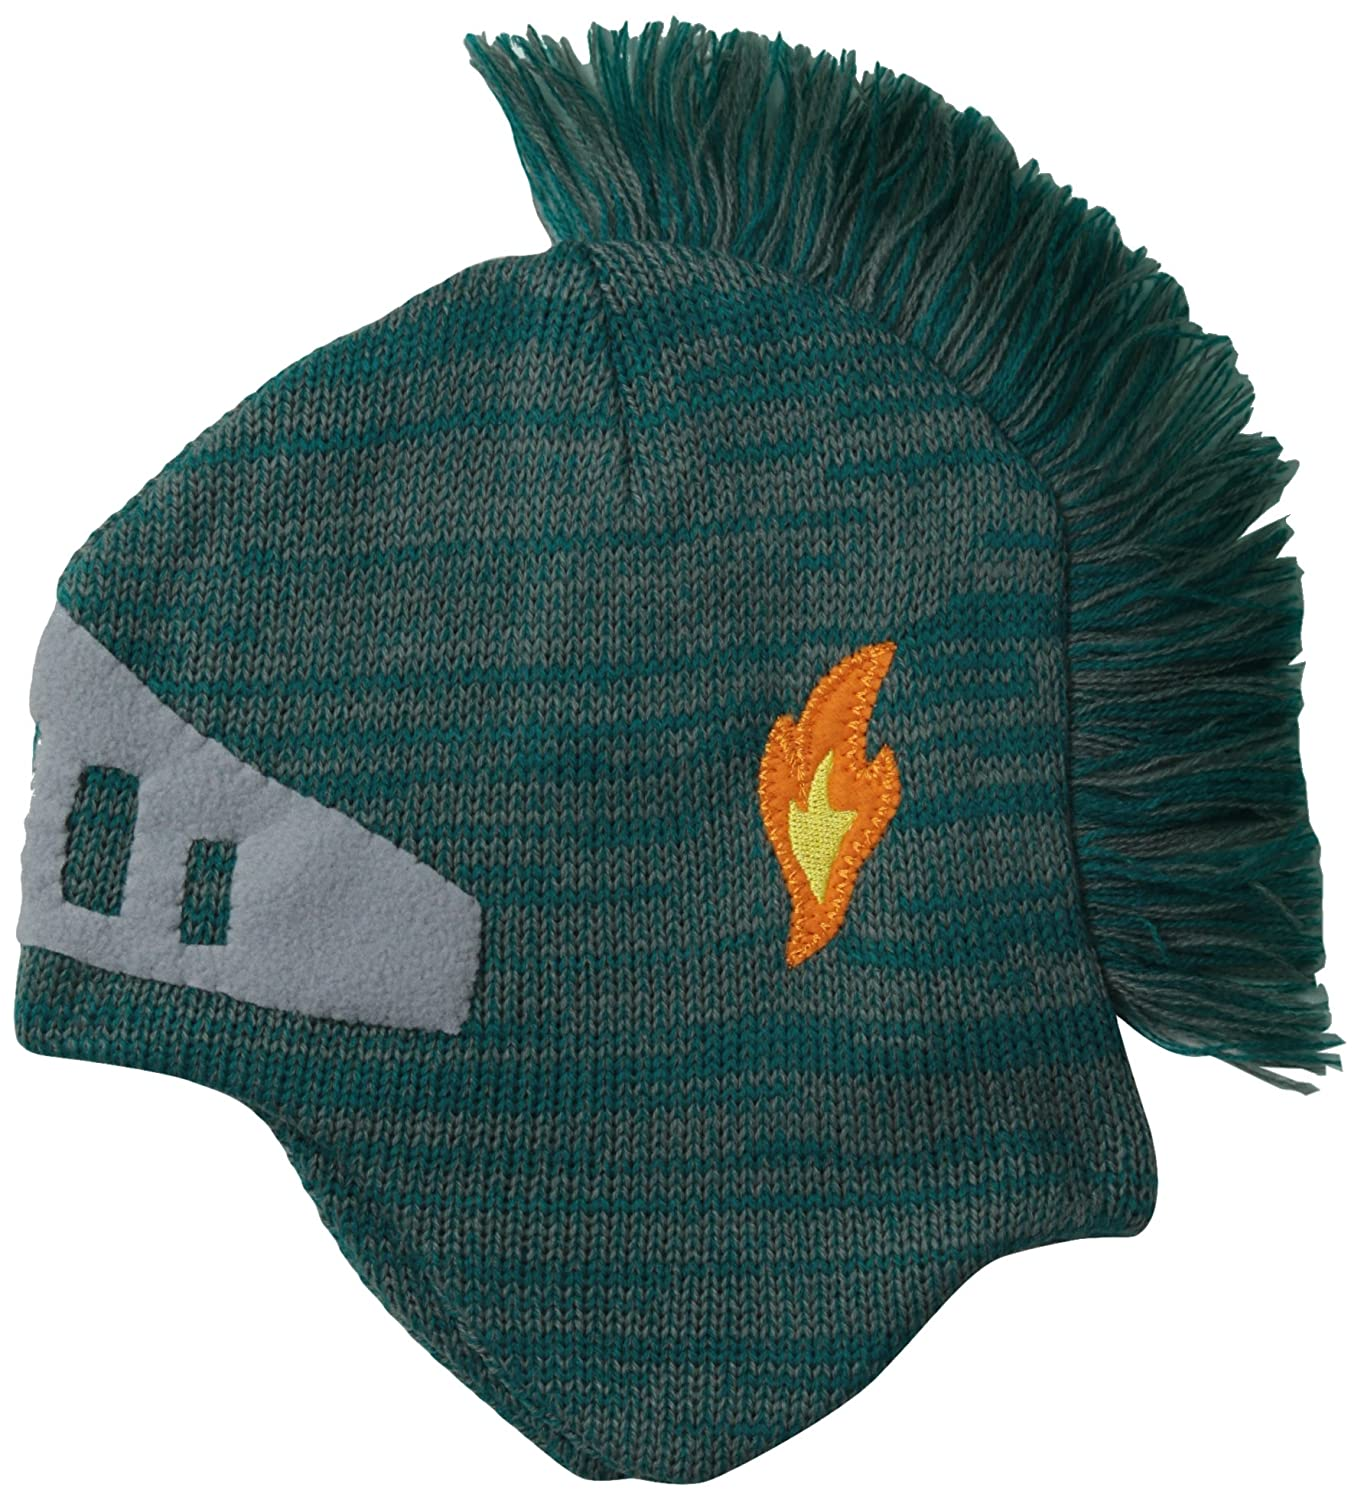 KIDORABLE boys Little Boys Hat Kidorable Dragon Knight Hat Soft Knit Hat for Kids Blue One Size Fits Most